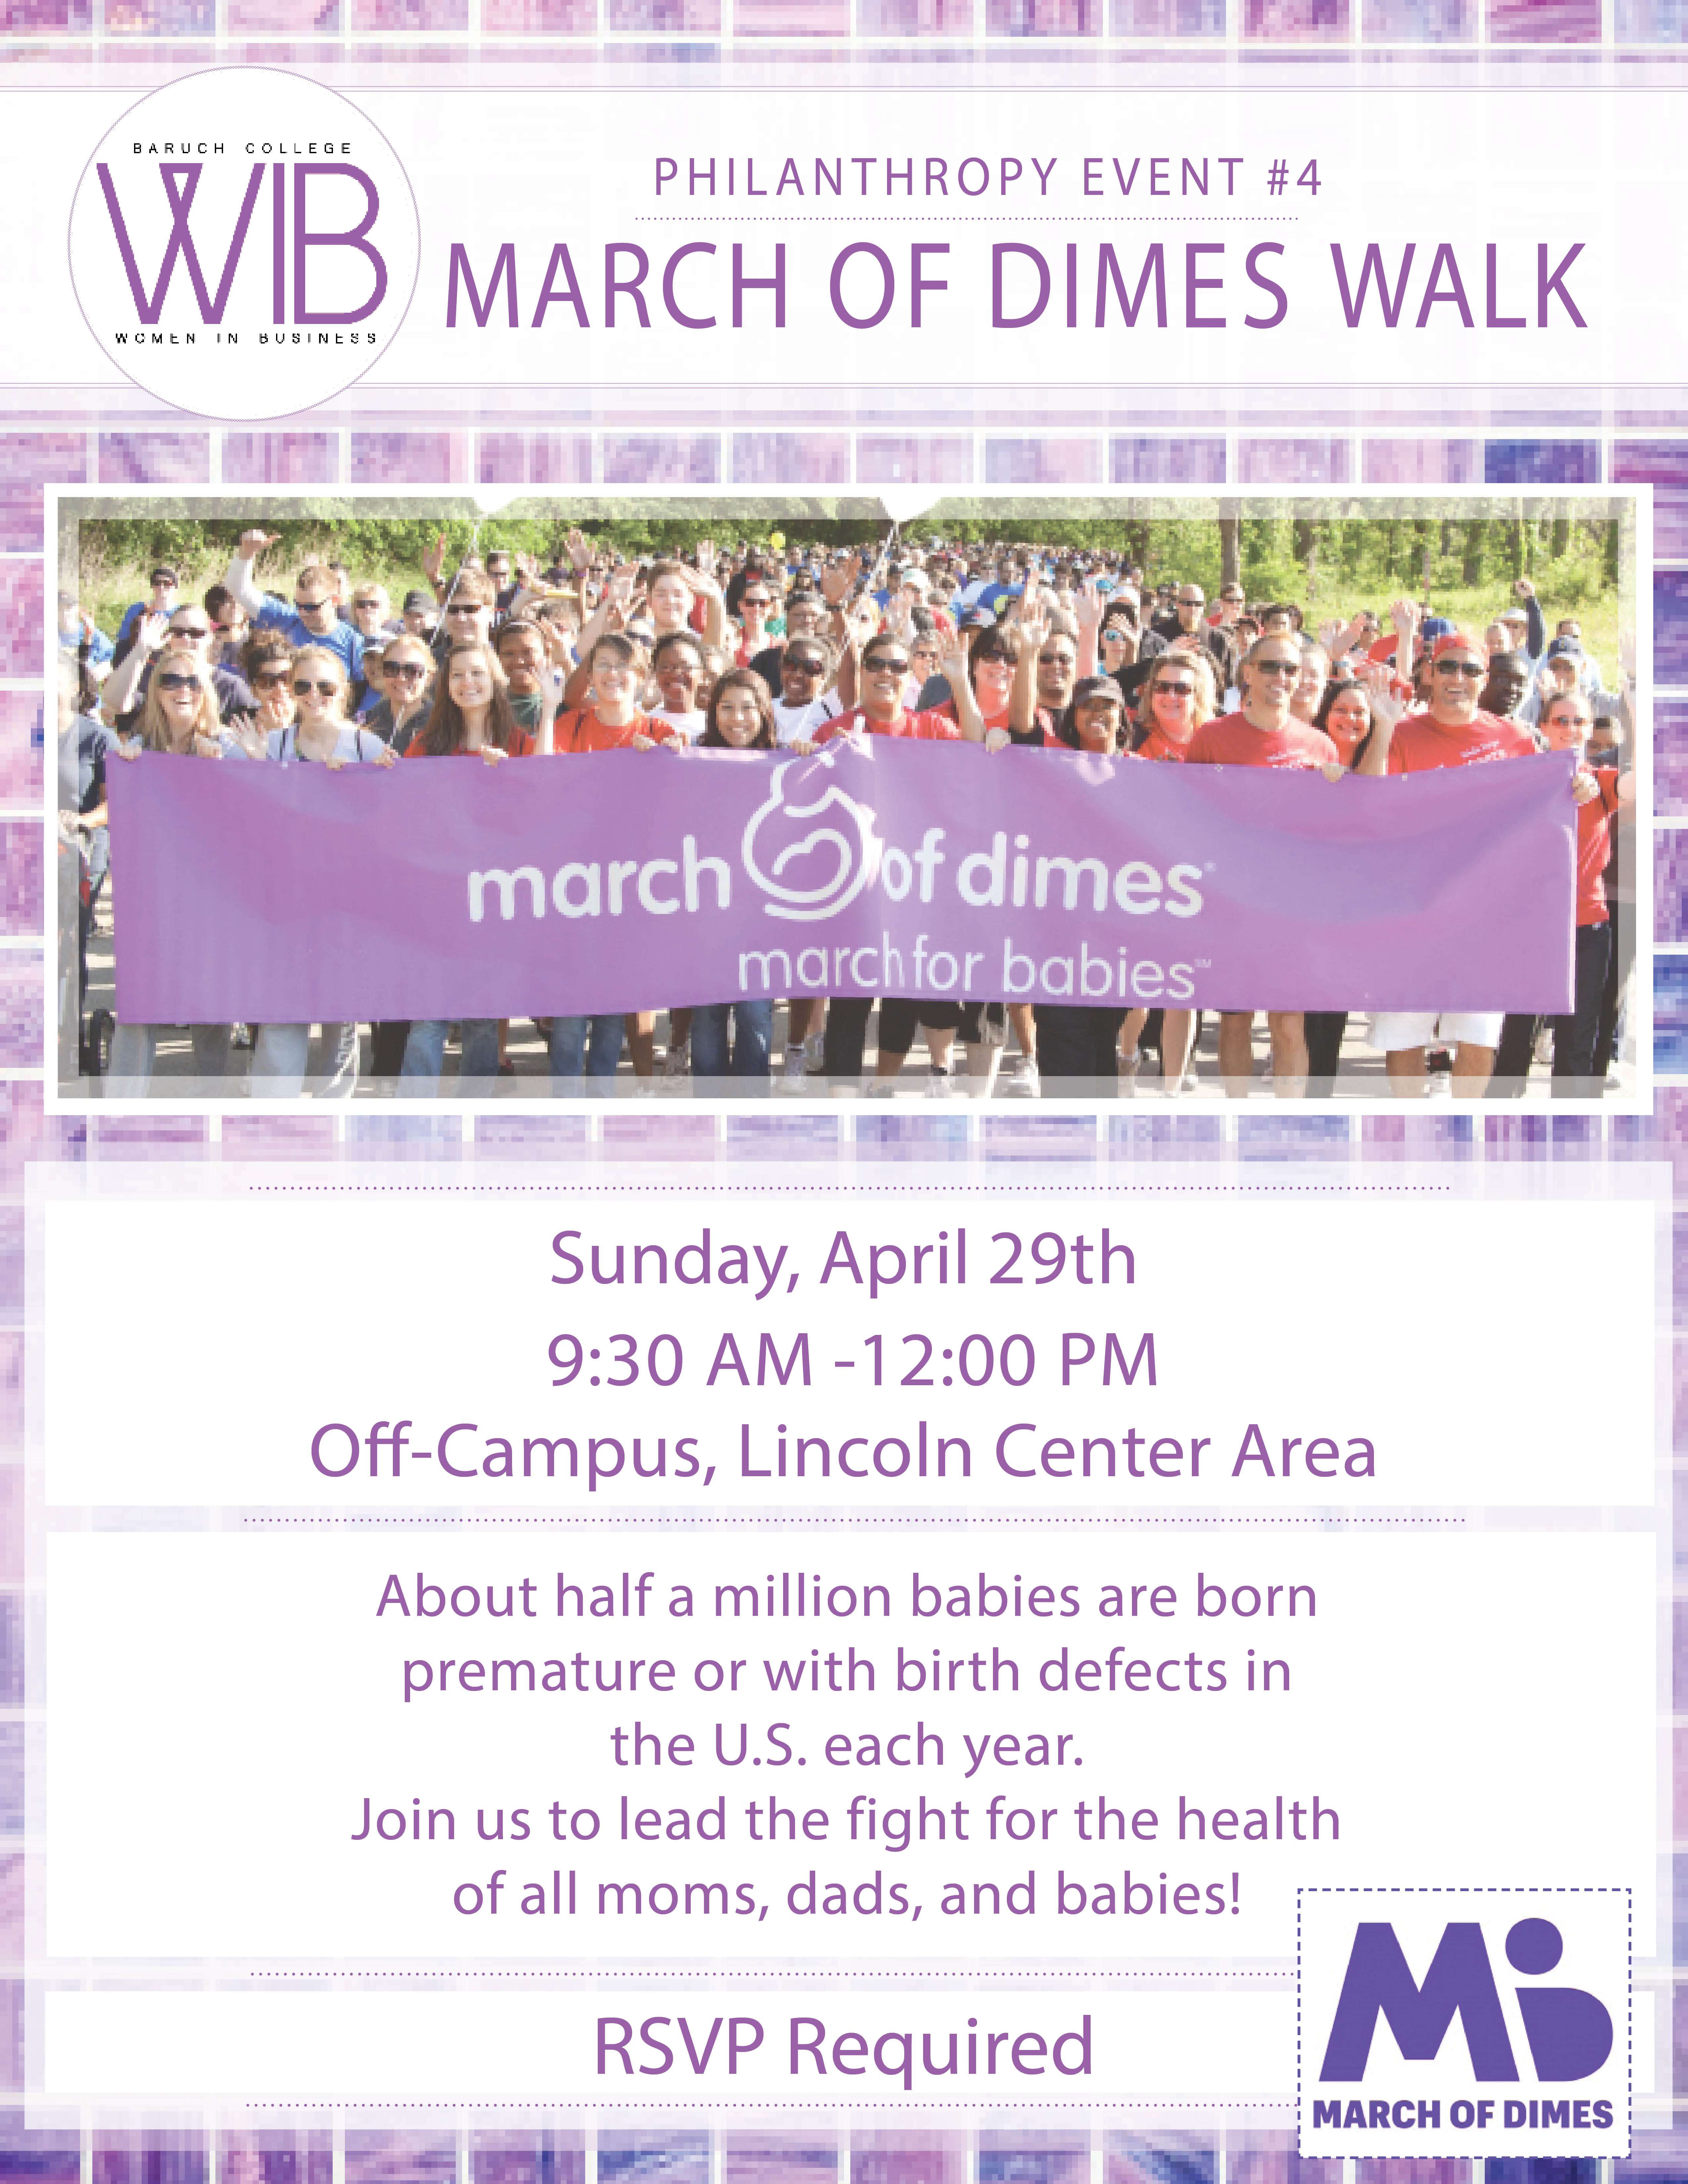 March of Dimes #3